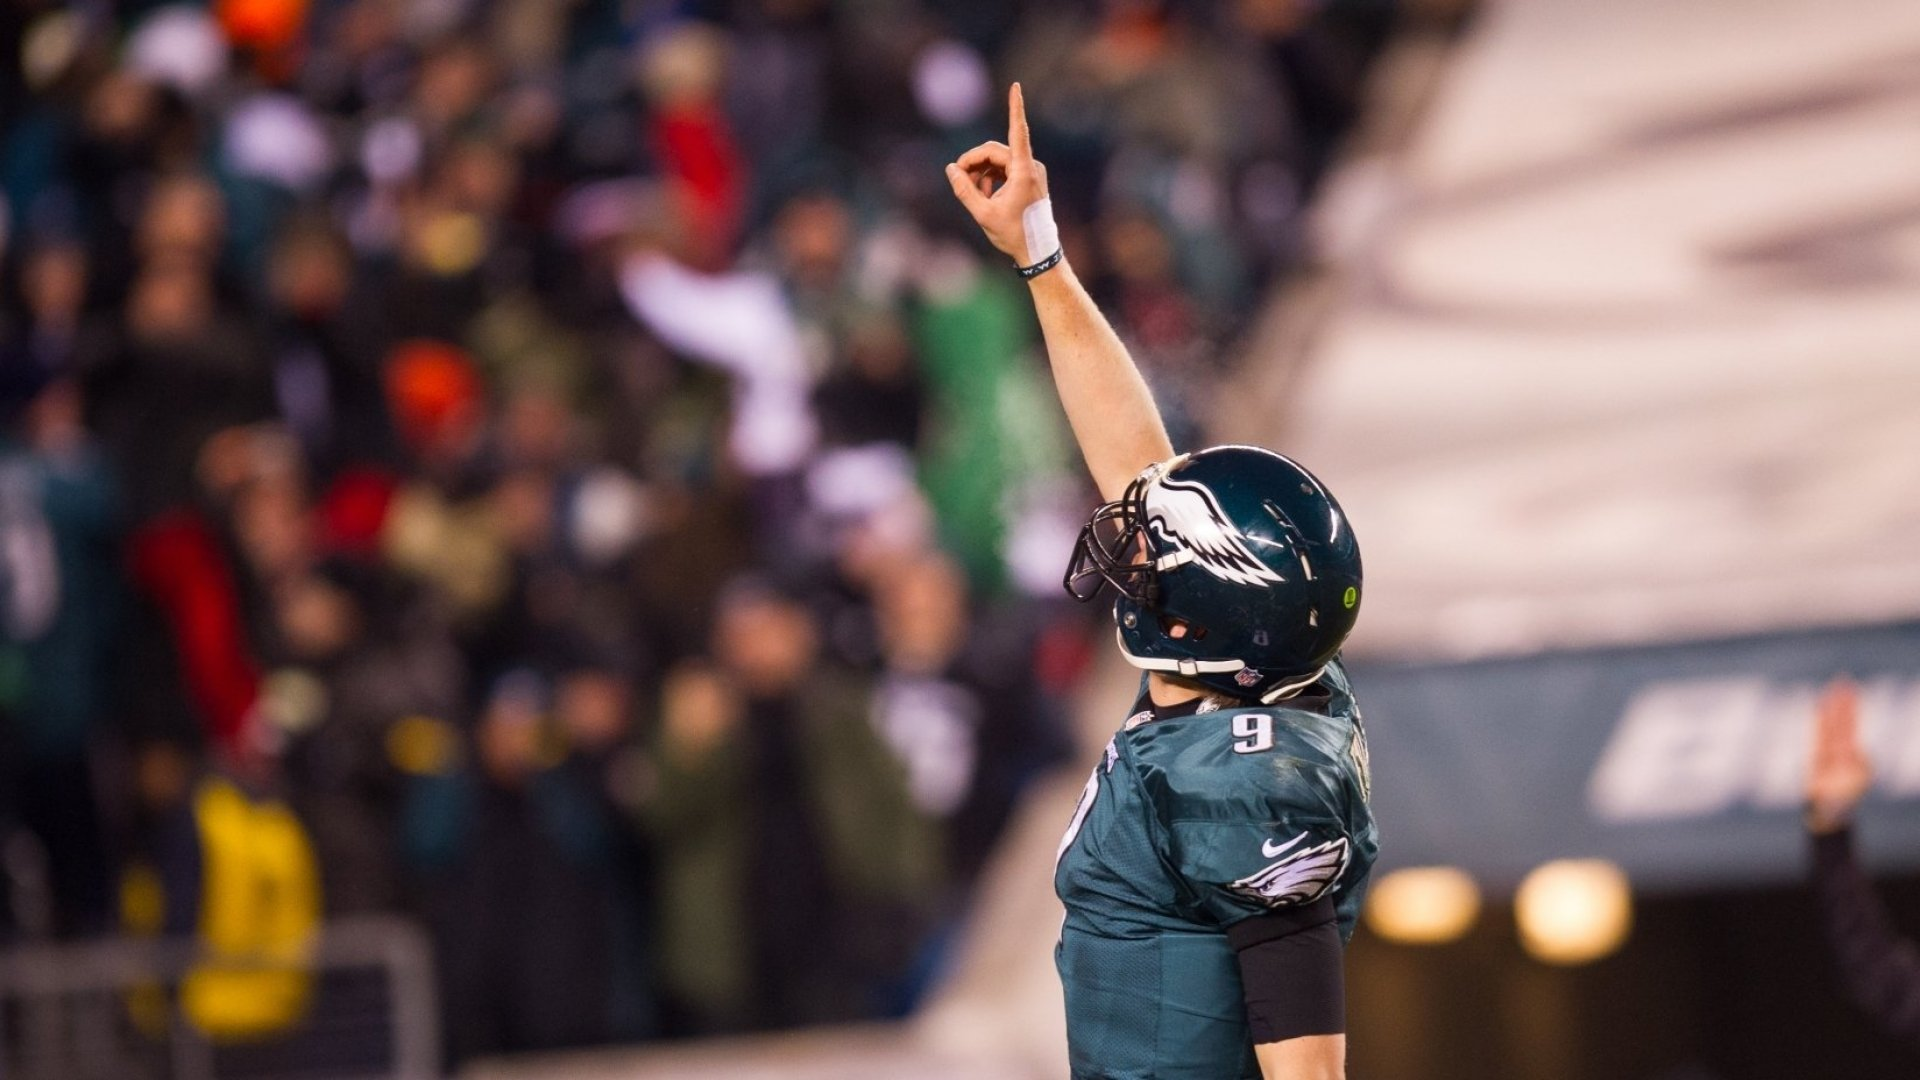 With a Single Action, Eagles Quarterback Nick Foles Just Showed Us What True Leadership Looks Like